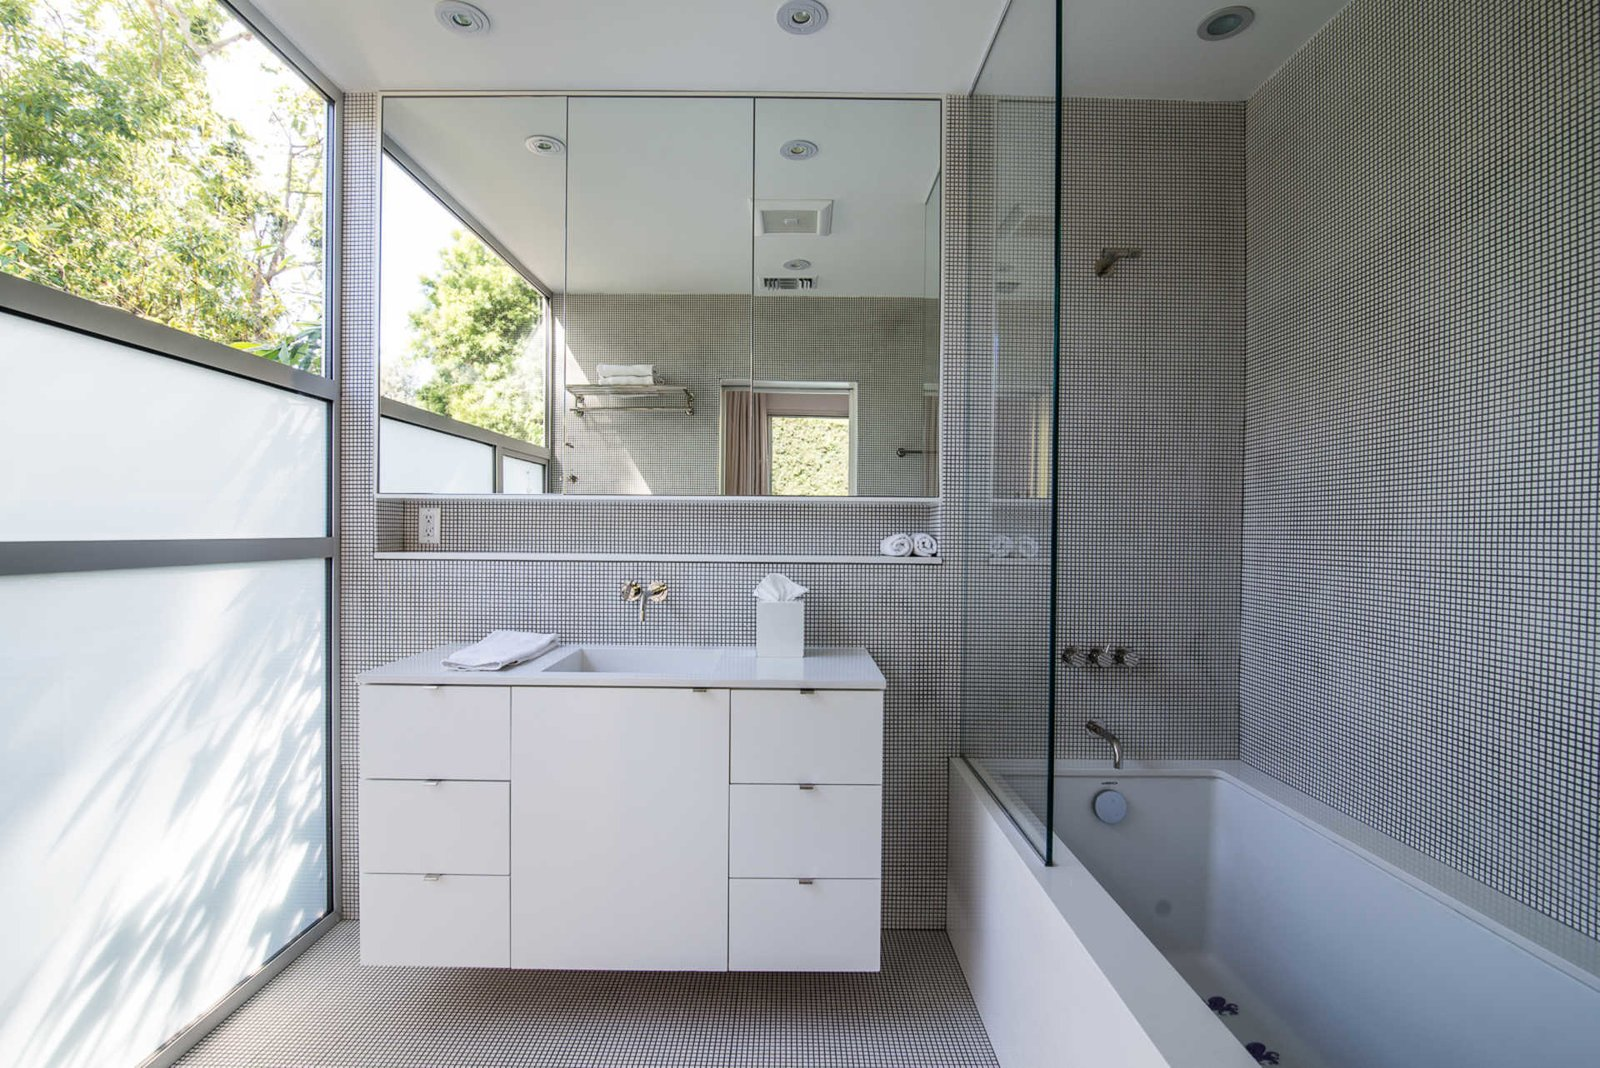 The home was thoughtfully designed to take full advantage of the property's idyllic surroundings. A serene guest bathroom features a frosted wall of glass and clerestory window, inspiring a gracious play on light and shadow. Nichols Canyon by Luxury Homes + Lifestyle